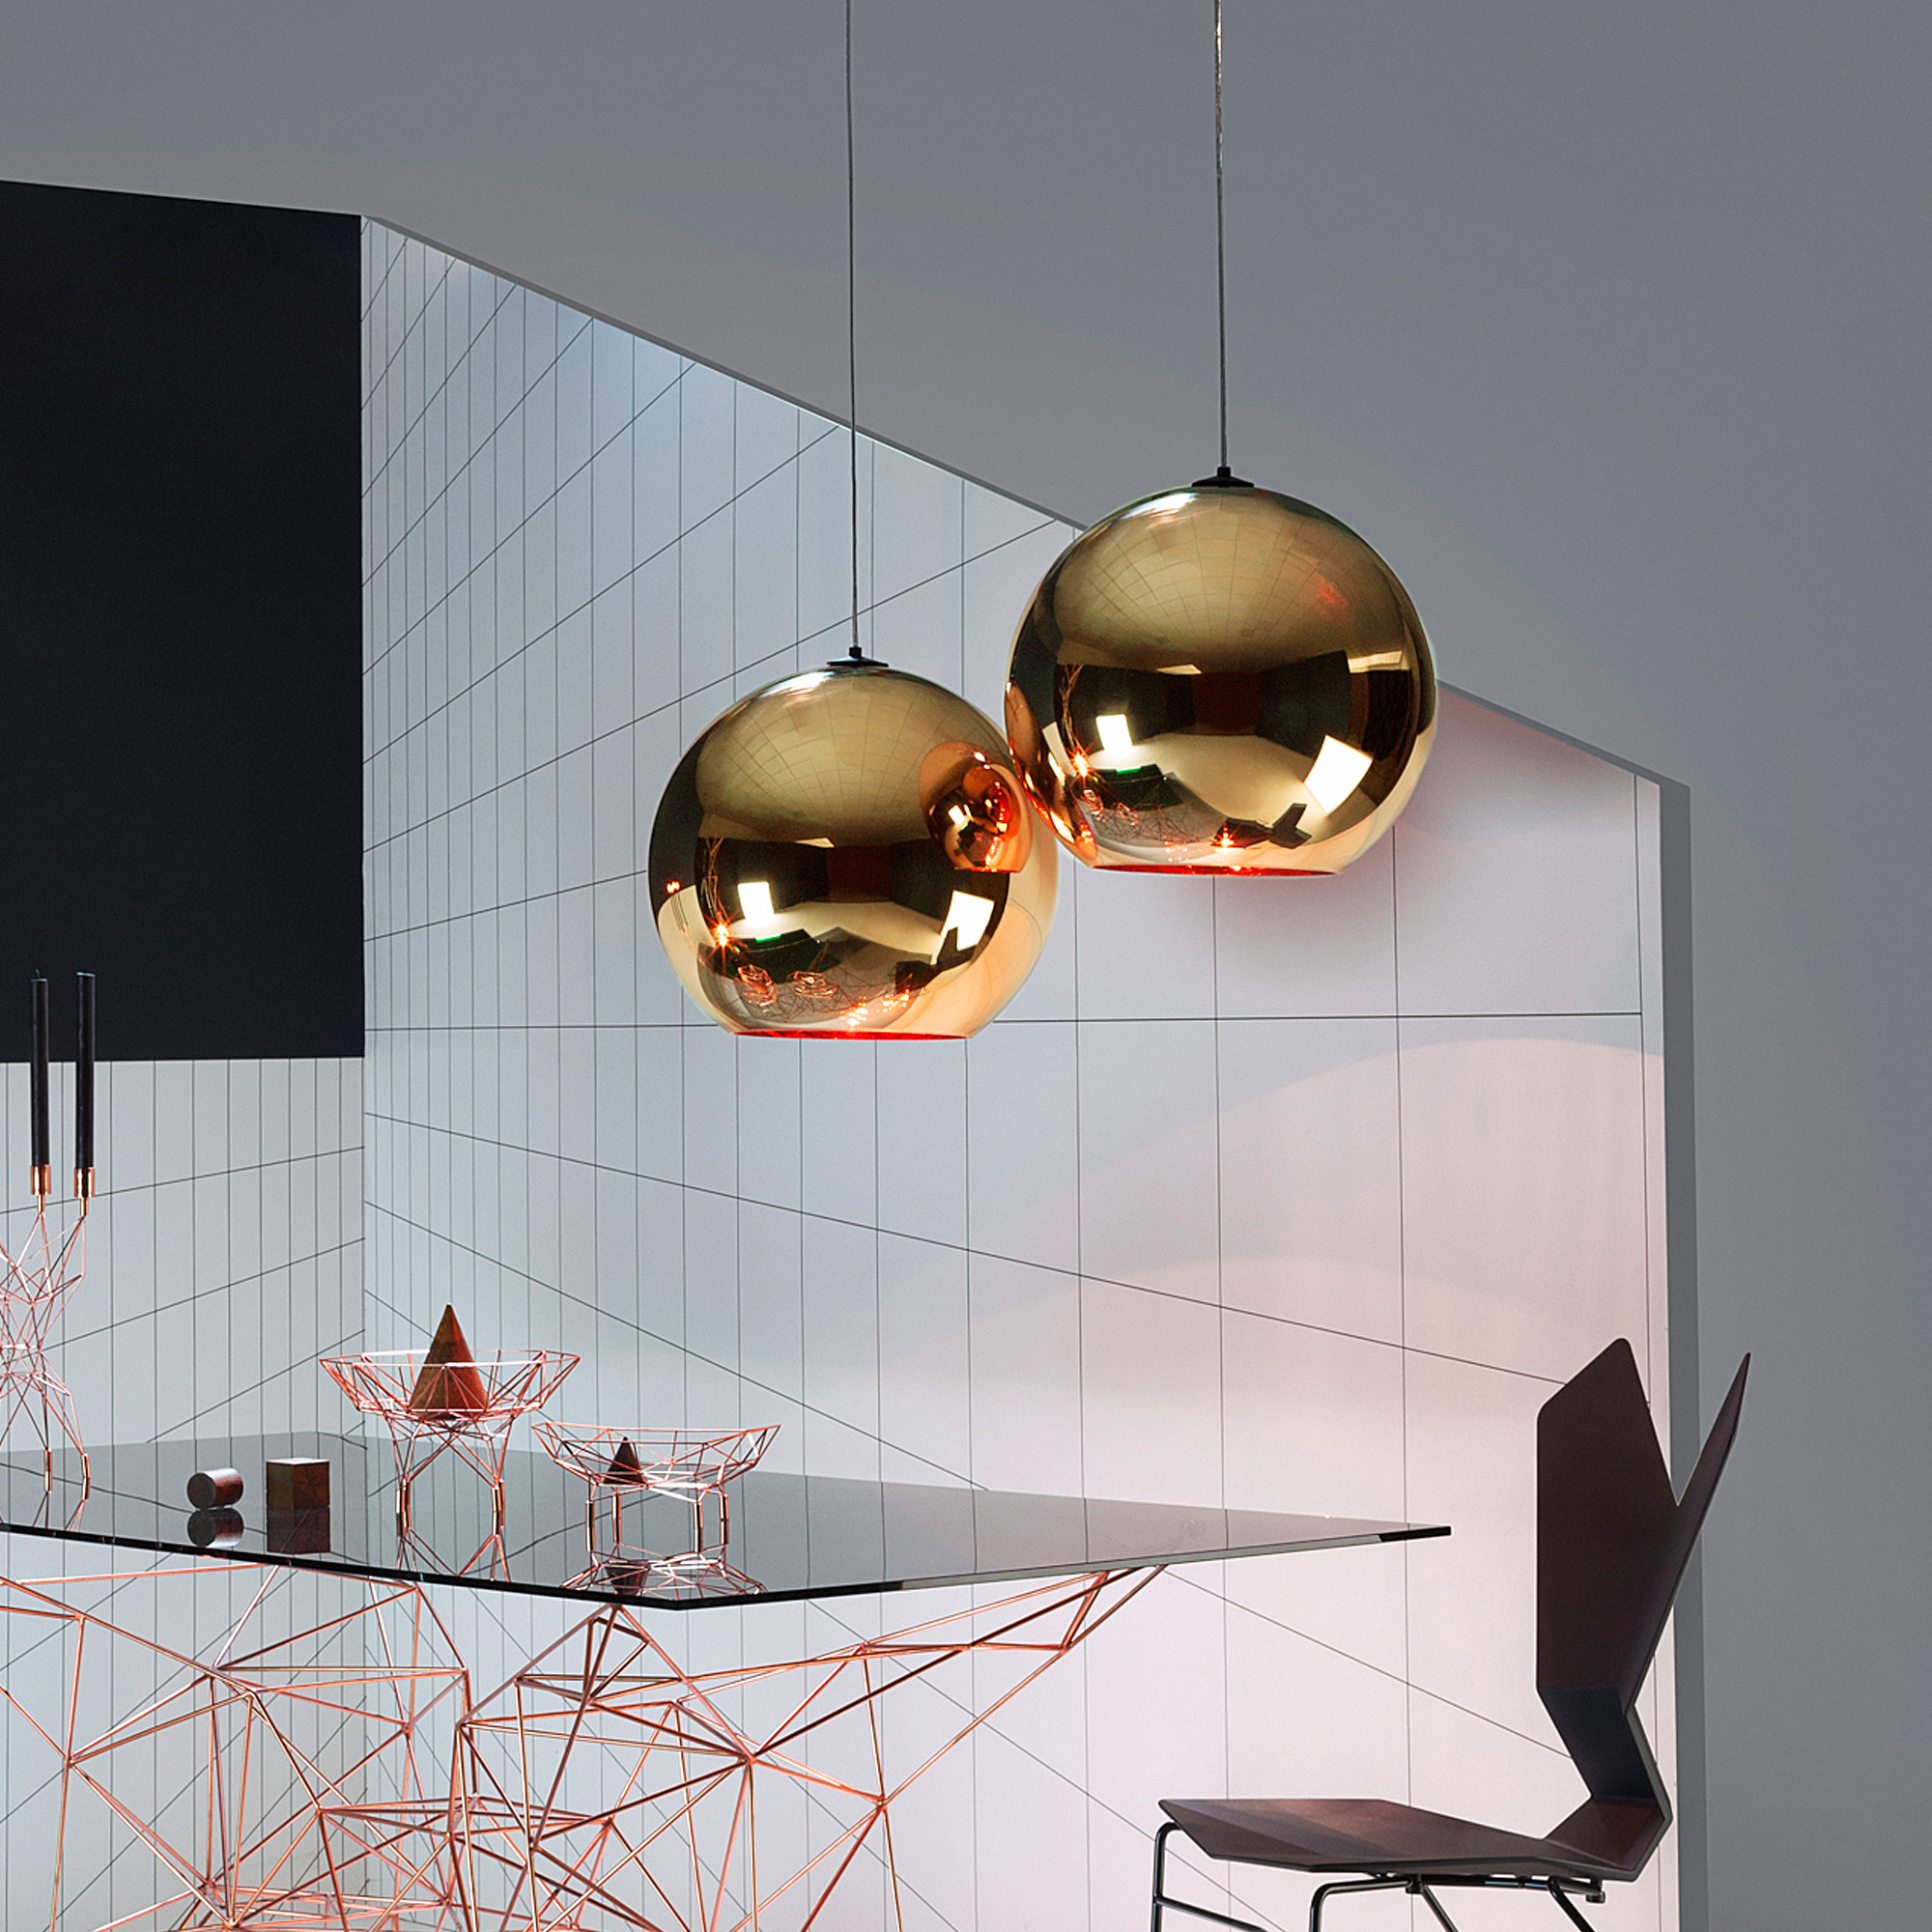 tom dixon copper pendelleuchte 45 mss4501 peum reuter onlineshop. Black Bedroom Furniture Sets. Home Design Ideas